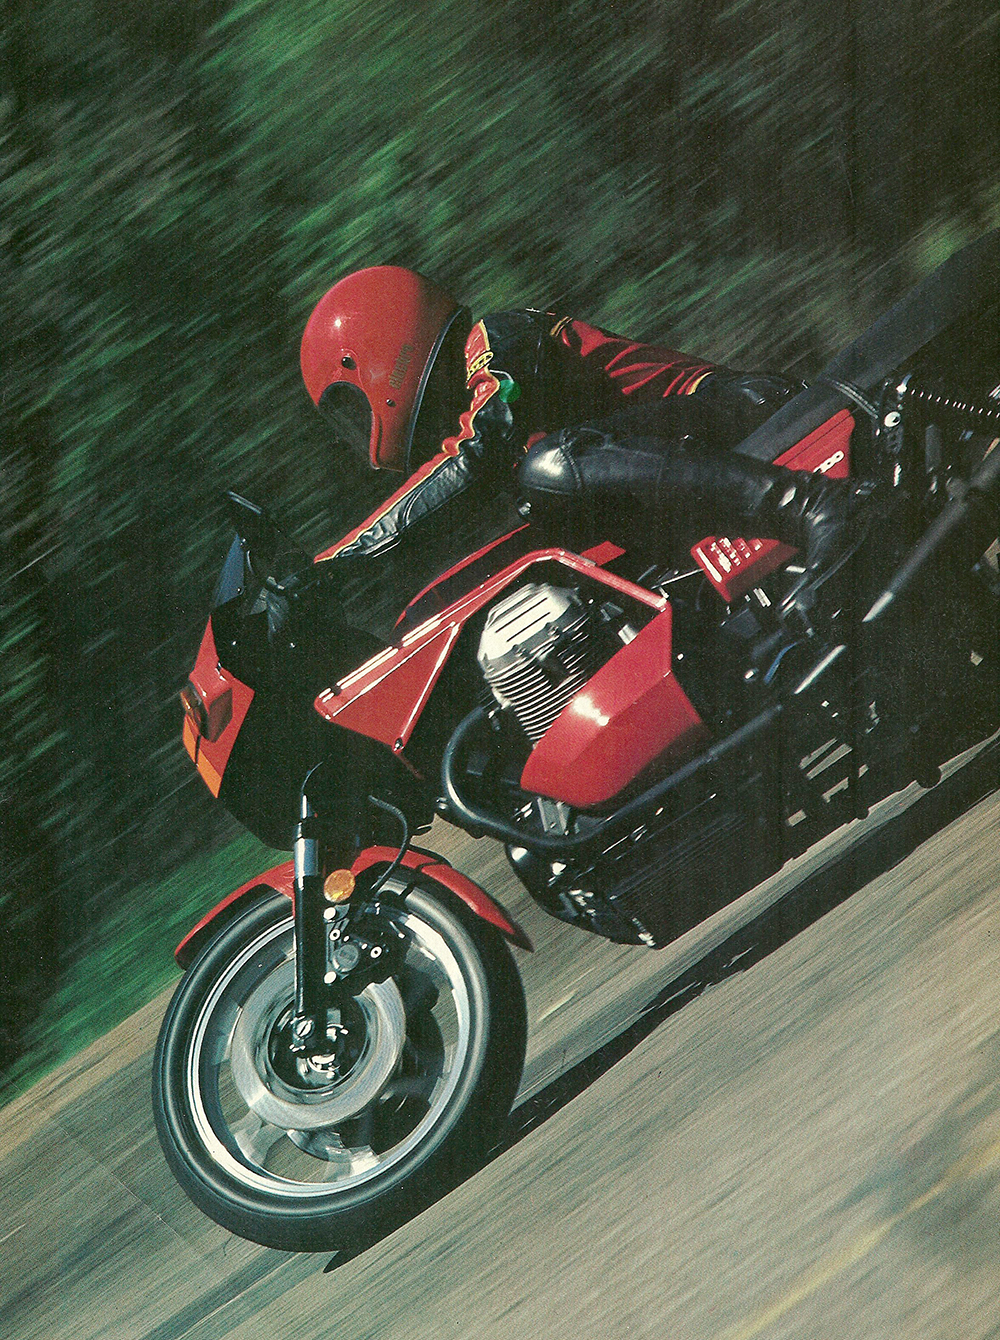 1980 Moto Guzzi Lemans CX100 road test 02.jpg